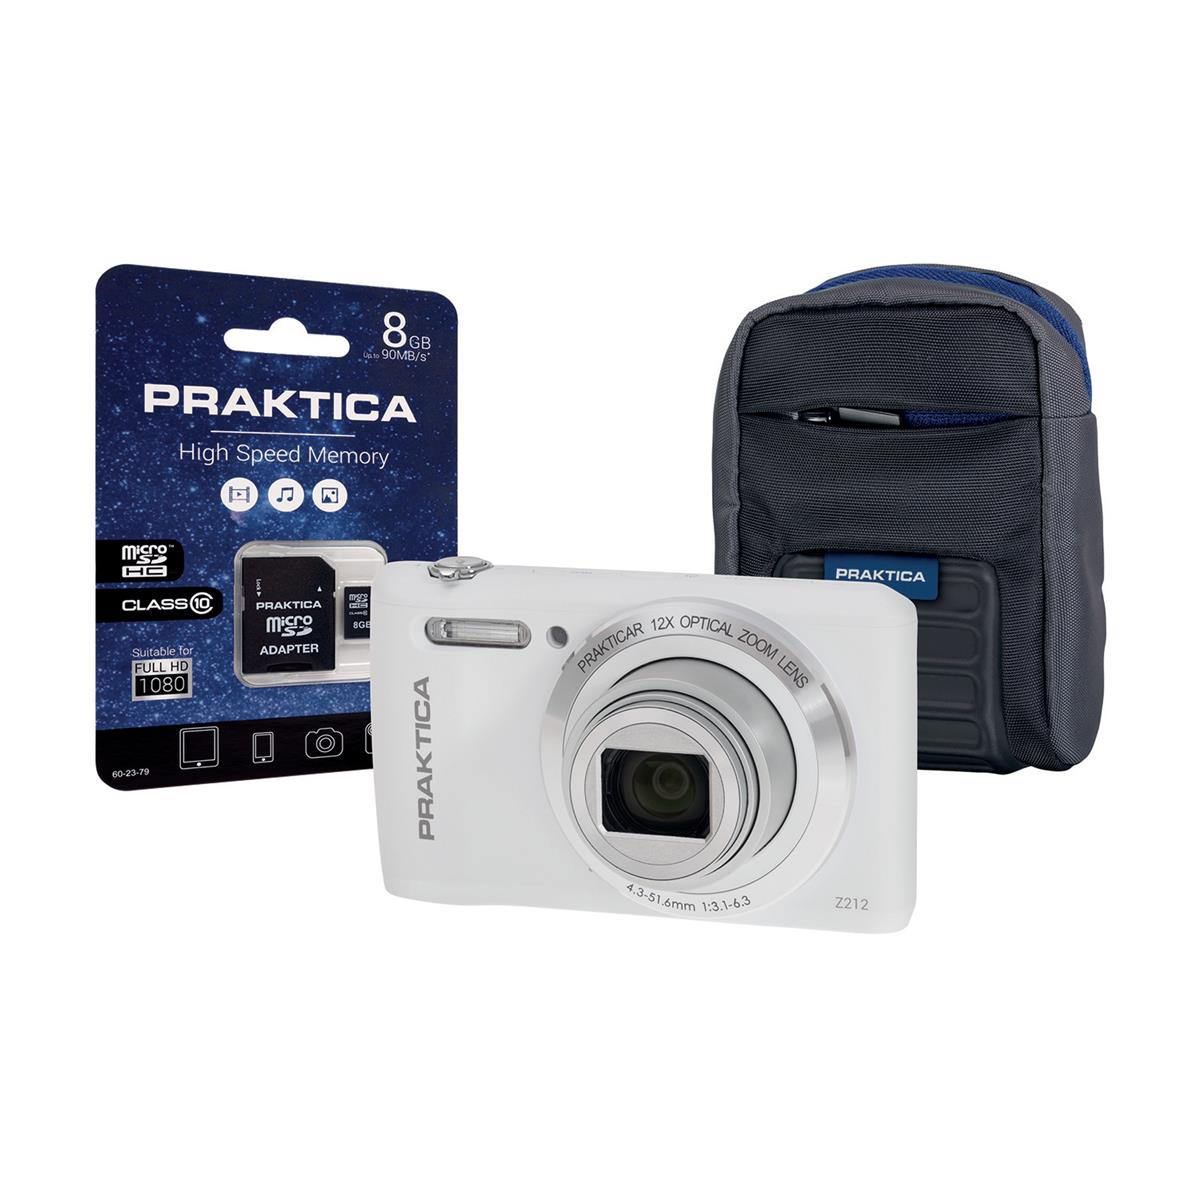 Praktica Z212 Digital Camera Kit Wide 12x Optical Zoom 20MP Case & 8GB SD card White Ref Z212-W 8GBCASE